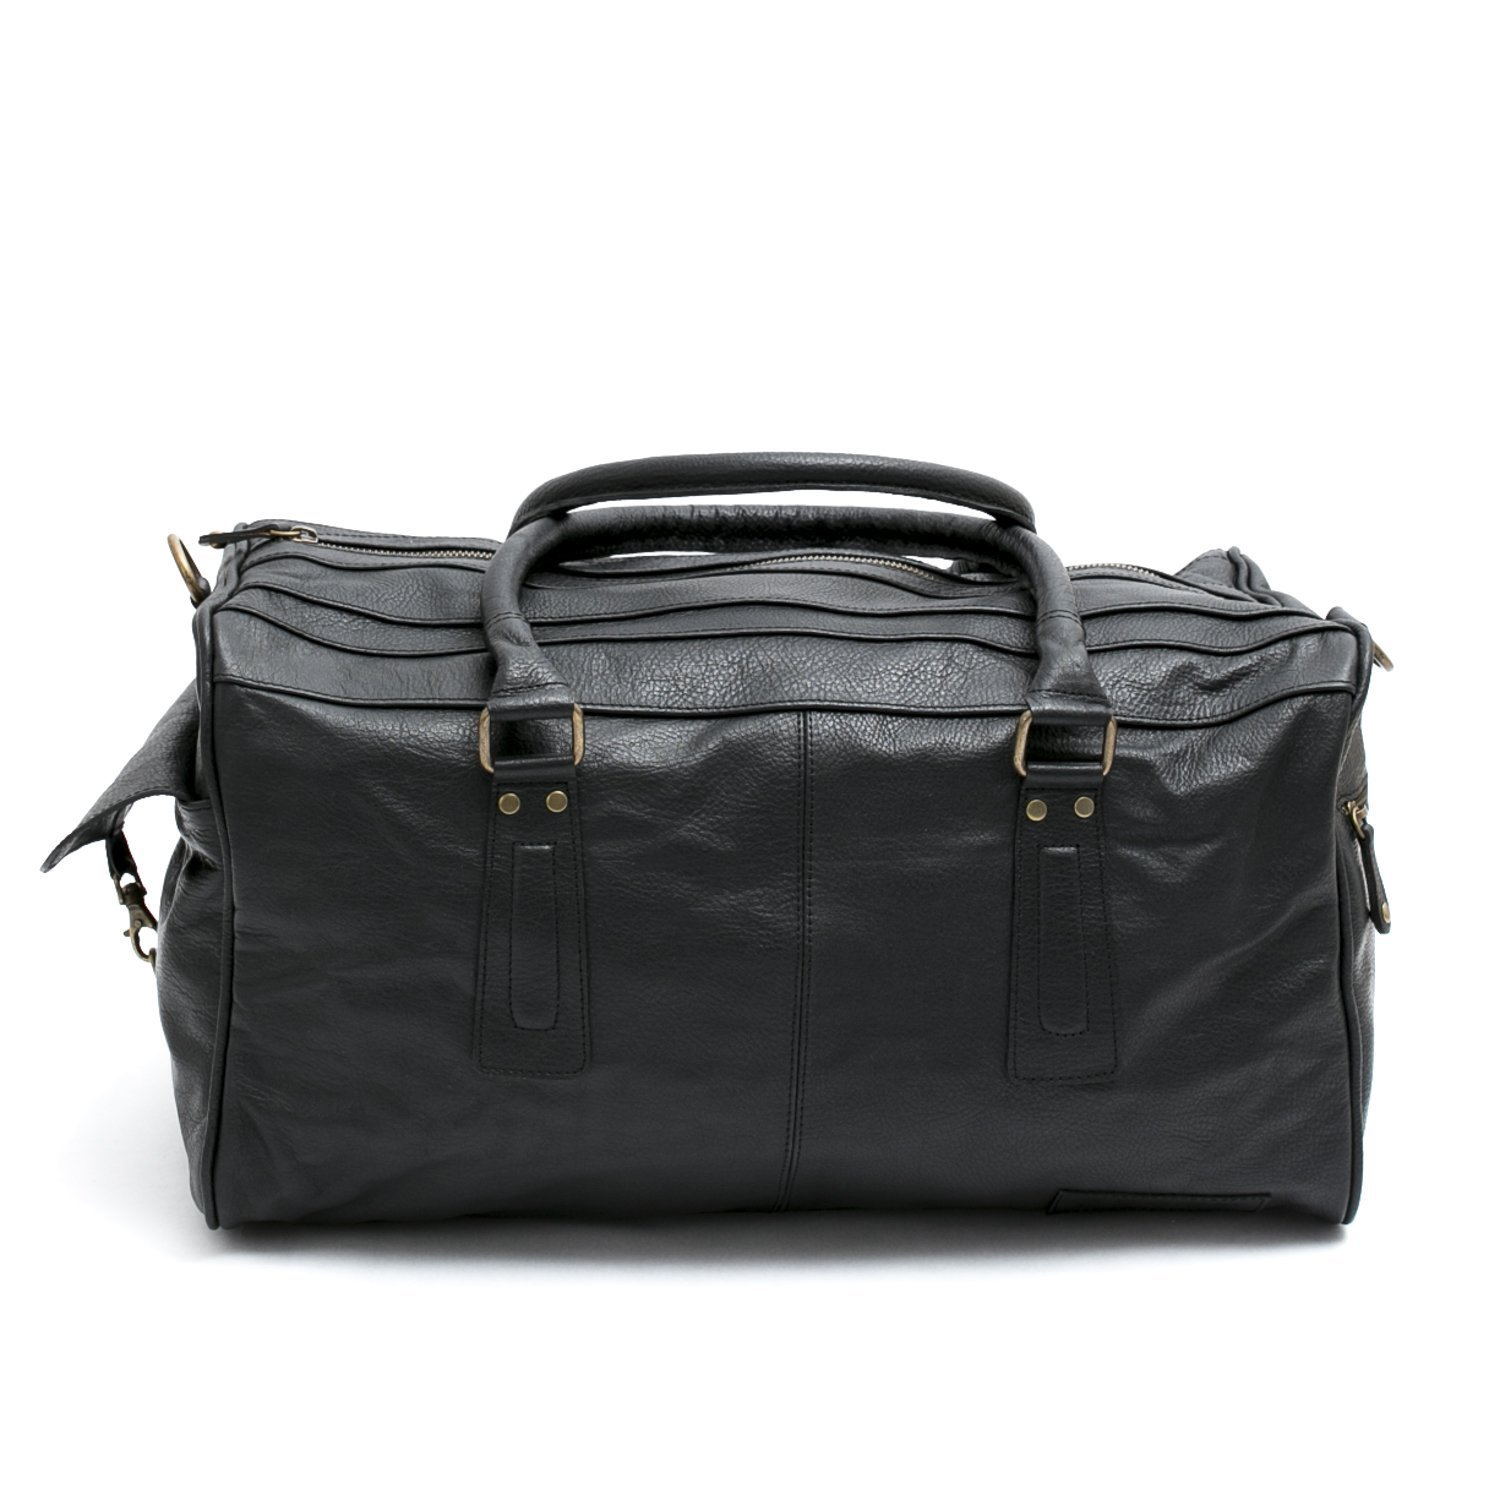 Pampa Puro  Small Black Handmade Leather Duffle Bag   ROQUE 9296091790